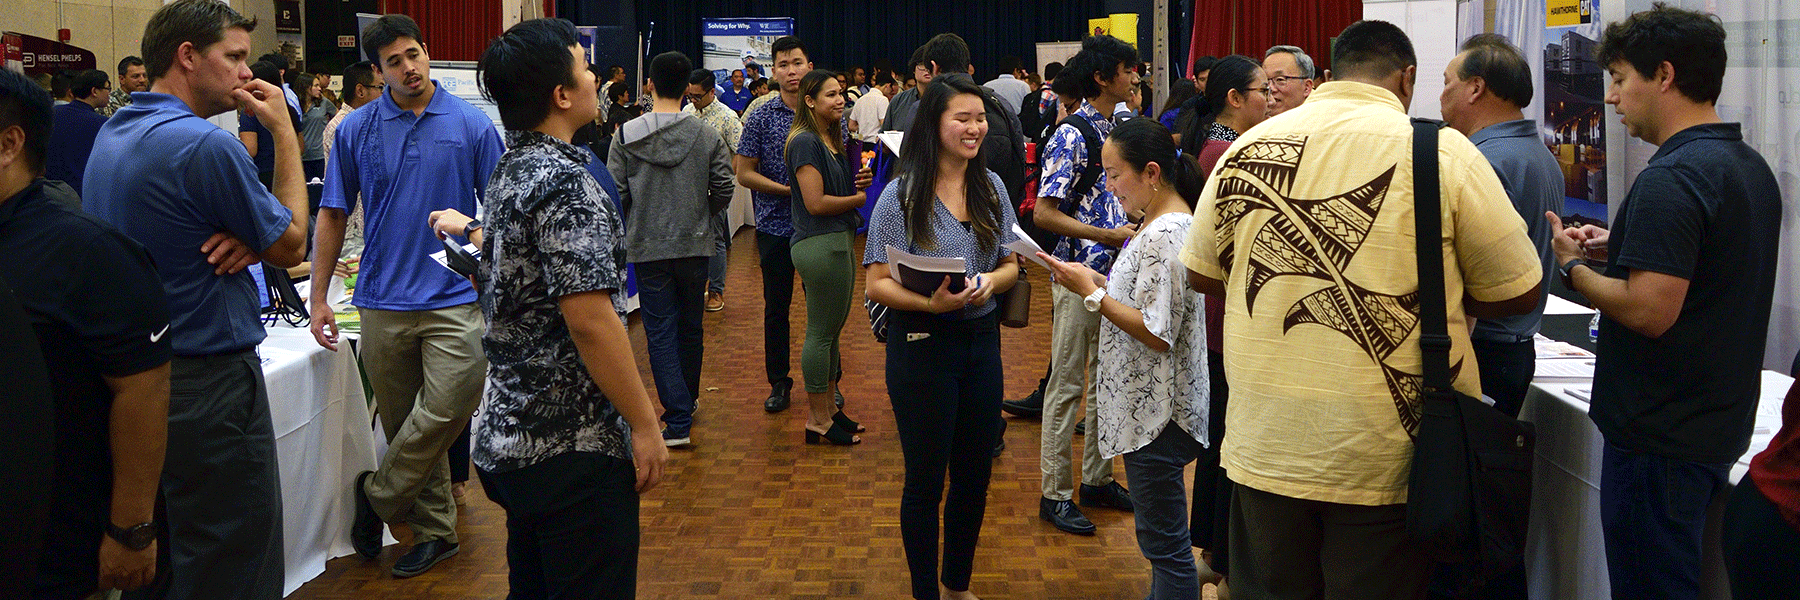 Wide Shot Of A Crowd Of Students And Recruiters Interacting.